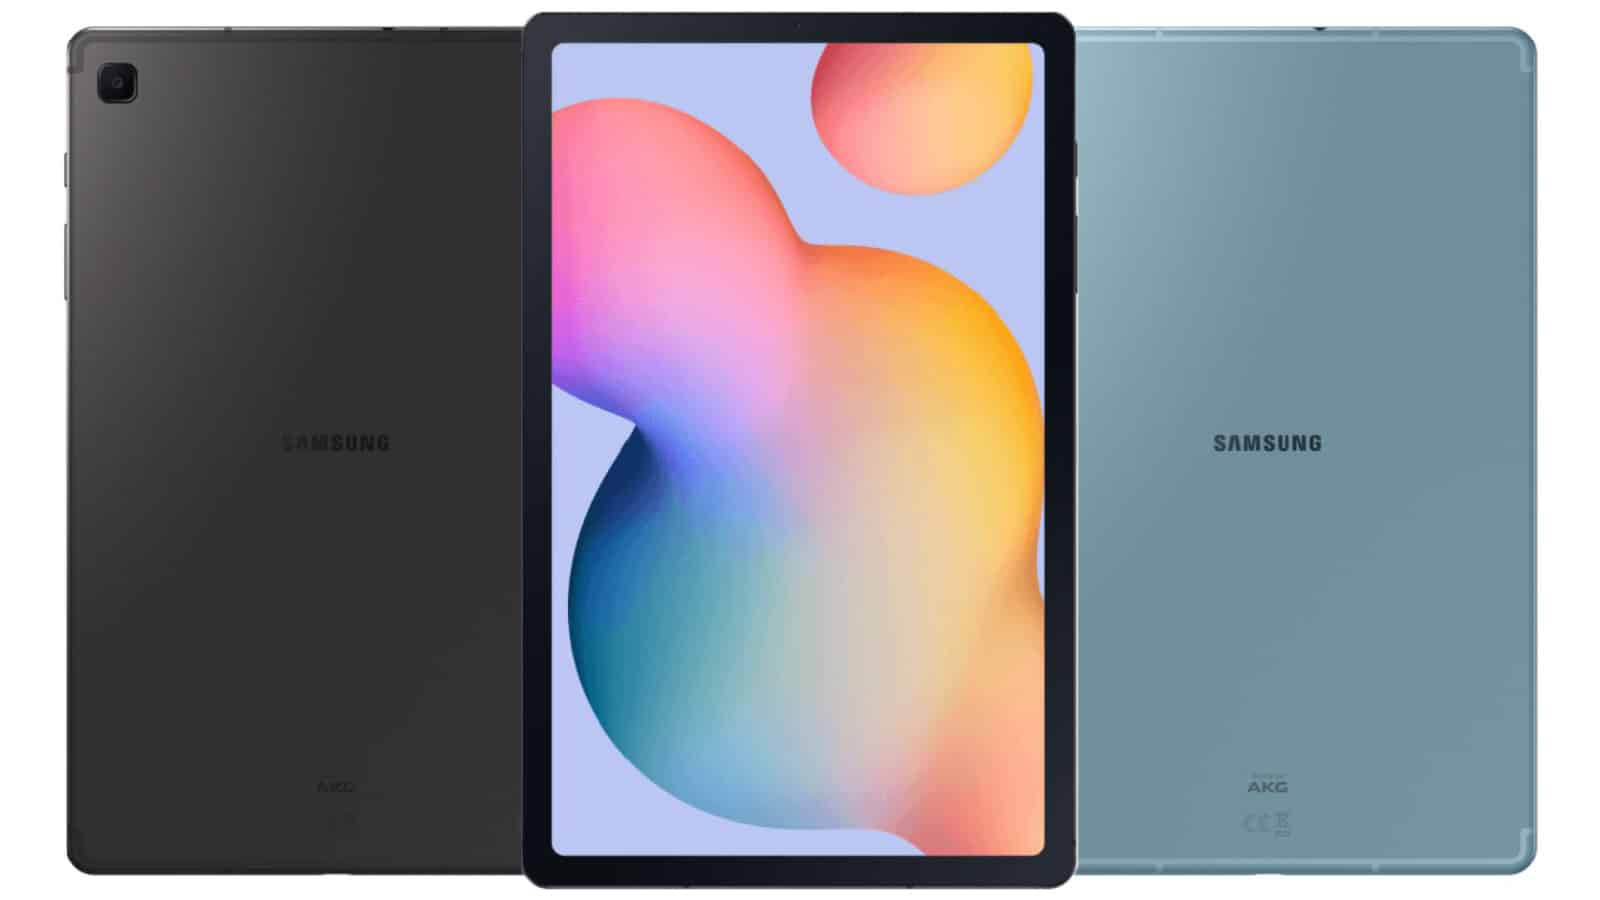 Samsung Confirms Us Eu Prices For Galaxy Tab S6 Lite